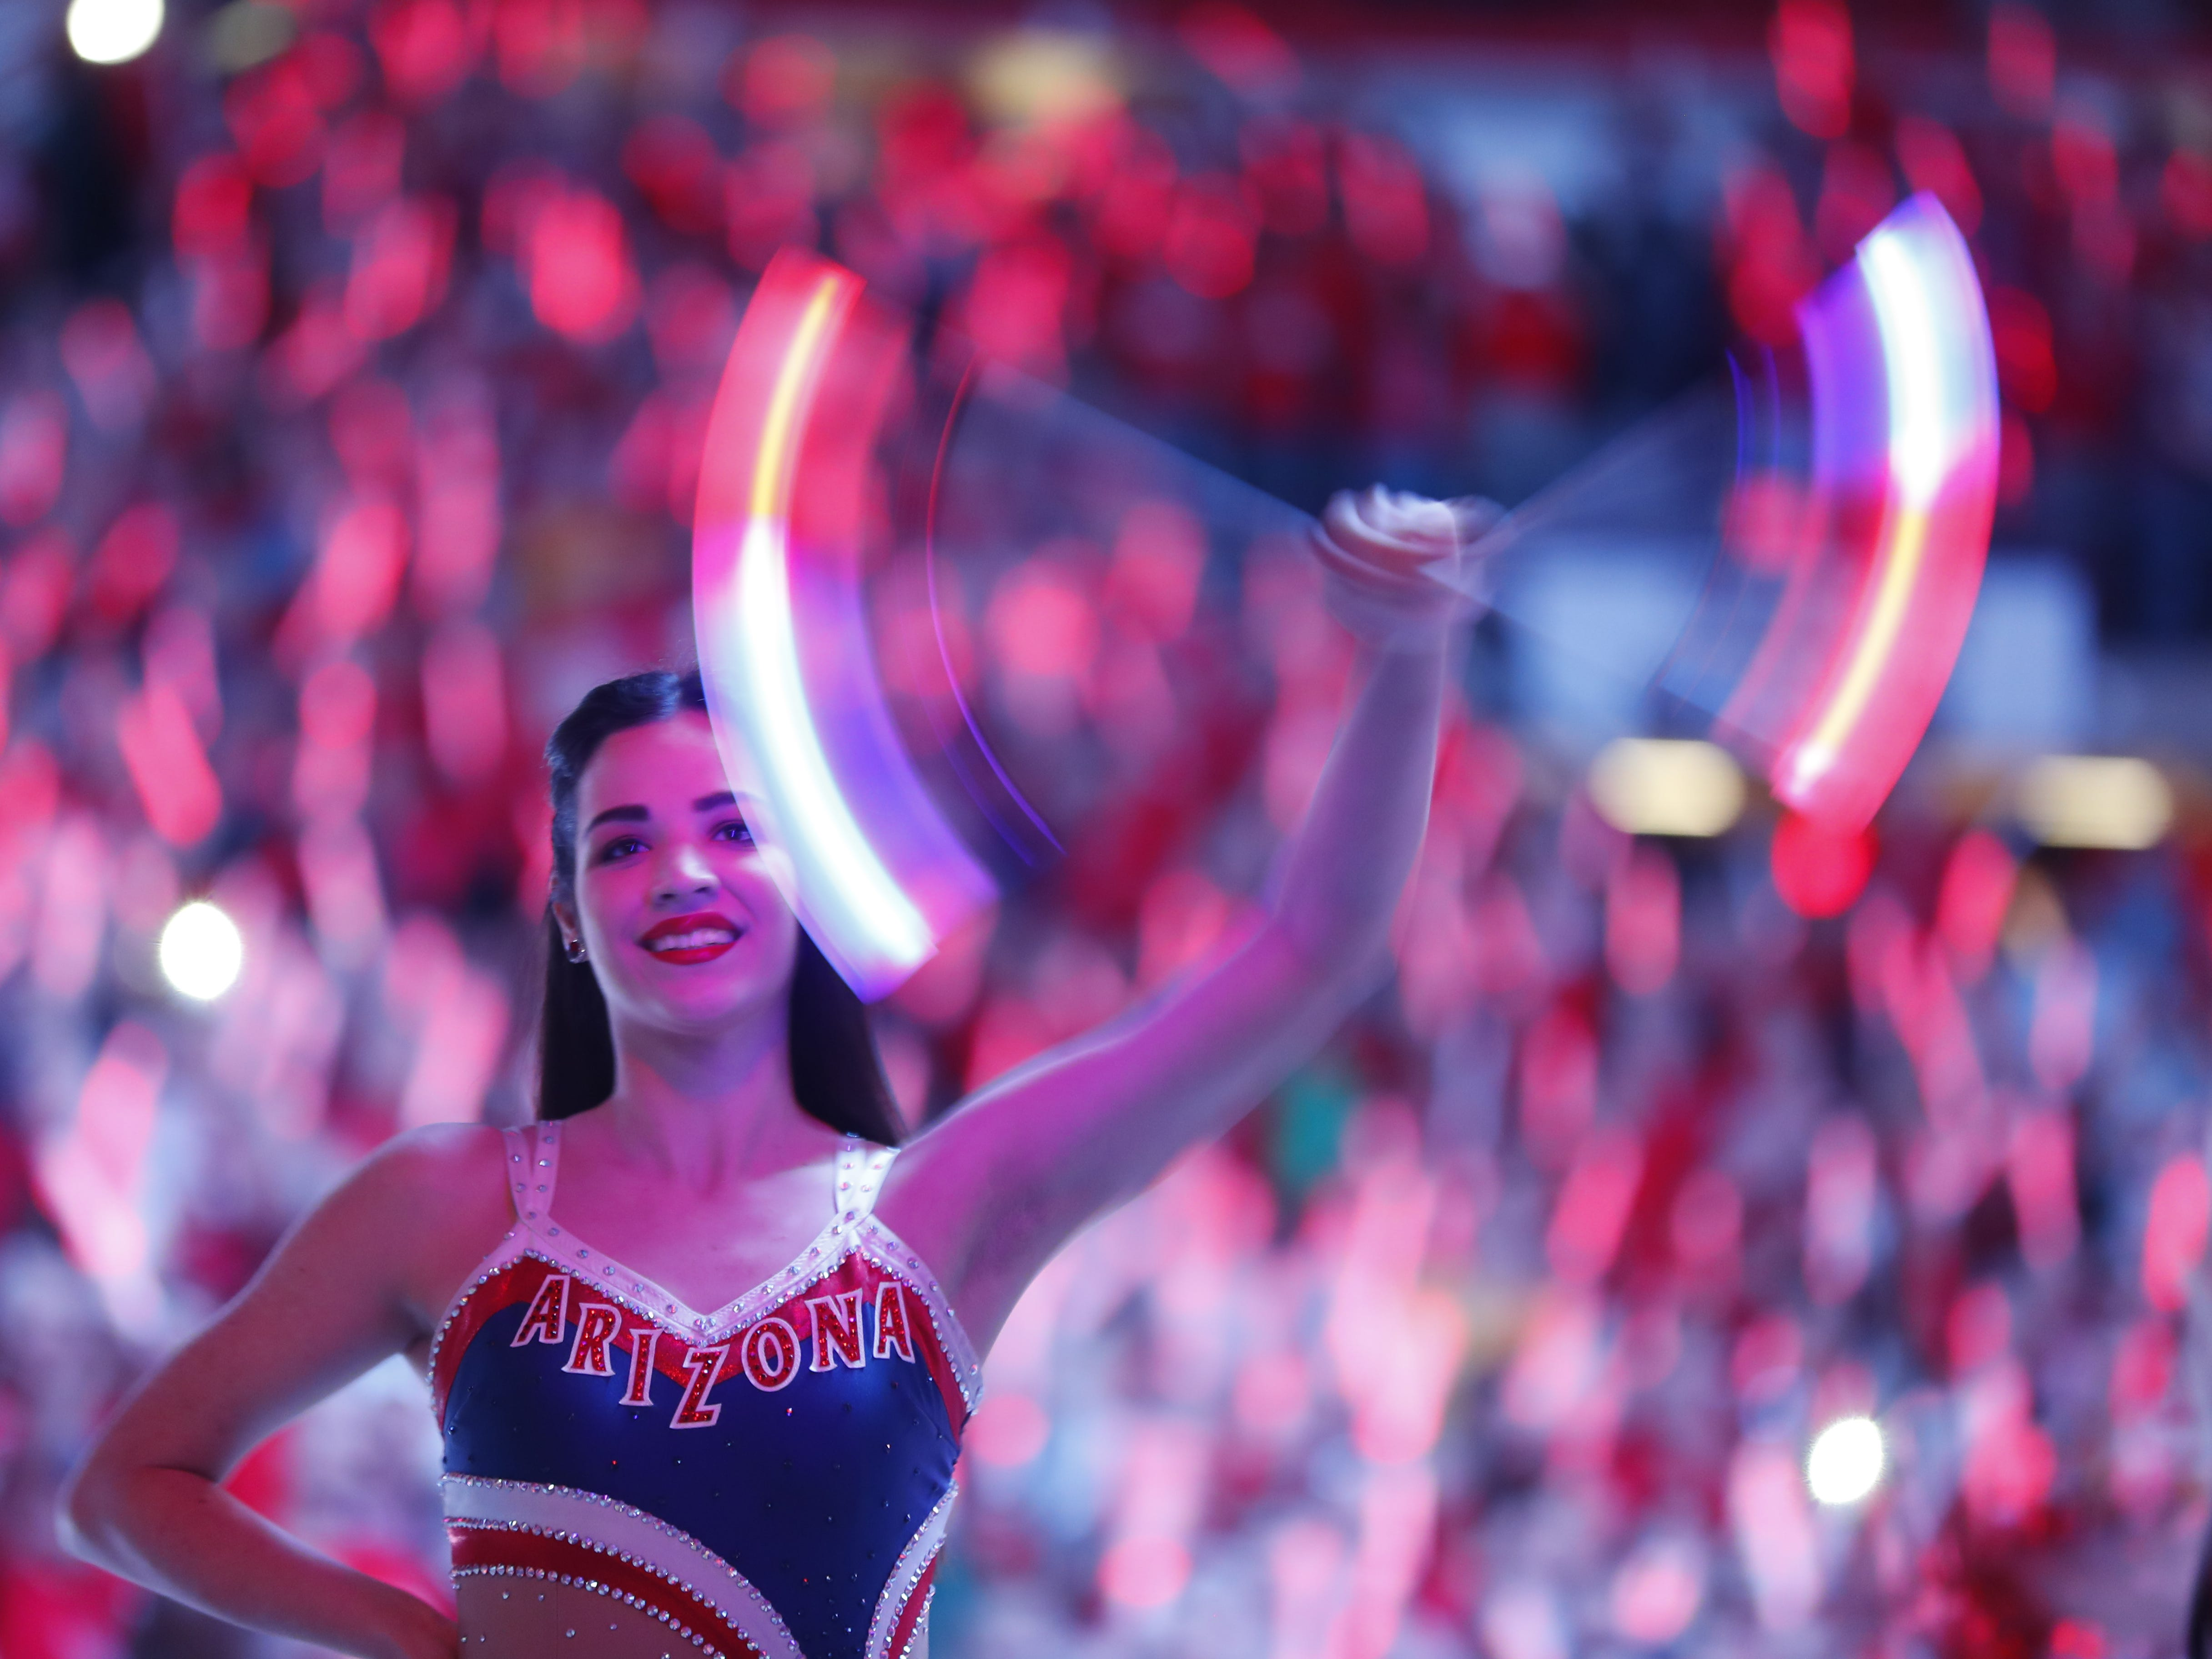 An Arizona cheerleader twirls her light up baton during the pregame at the McKale Memorial Center in Tucson, Ariz. on March 9, 2019.